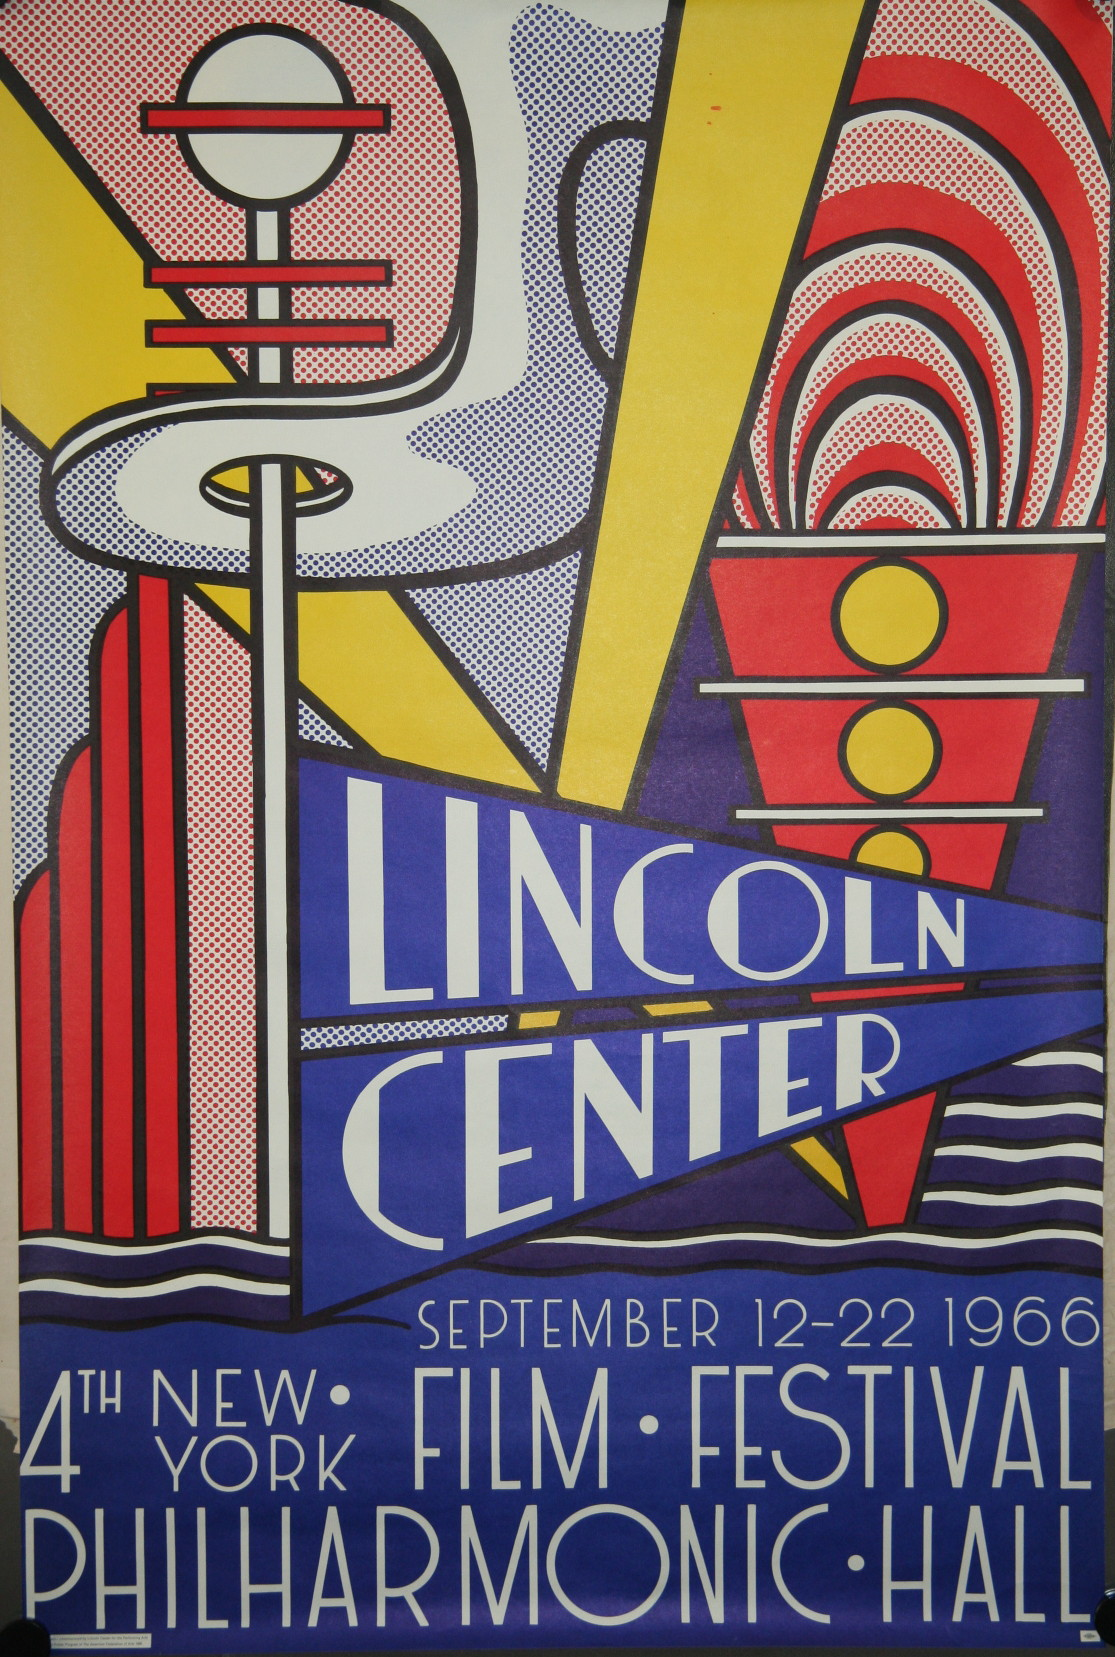 Lincoln Center, 4th Film Festival